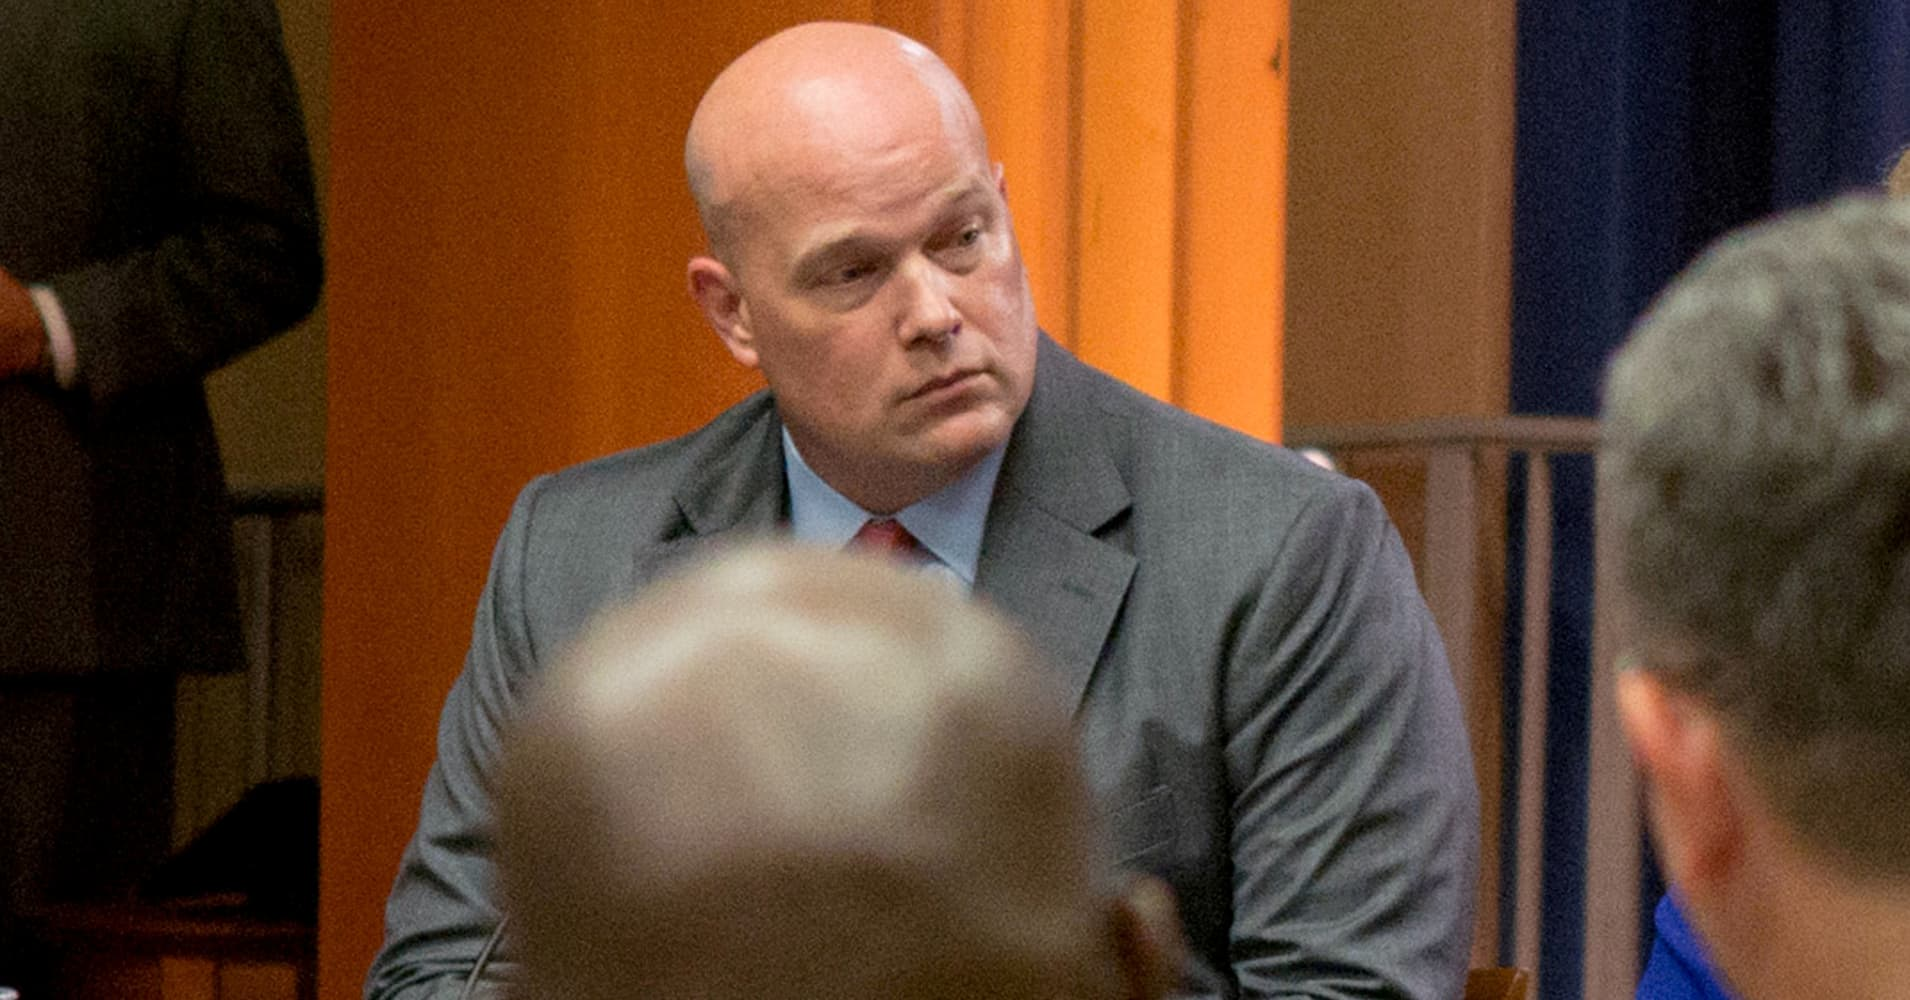 DOJ cleared Matthew Whitaker to be acting attorney general